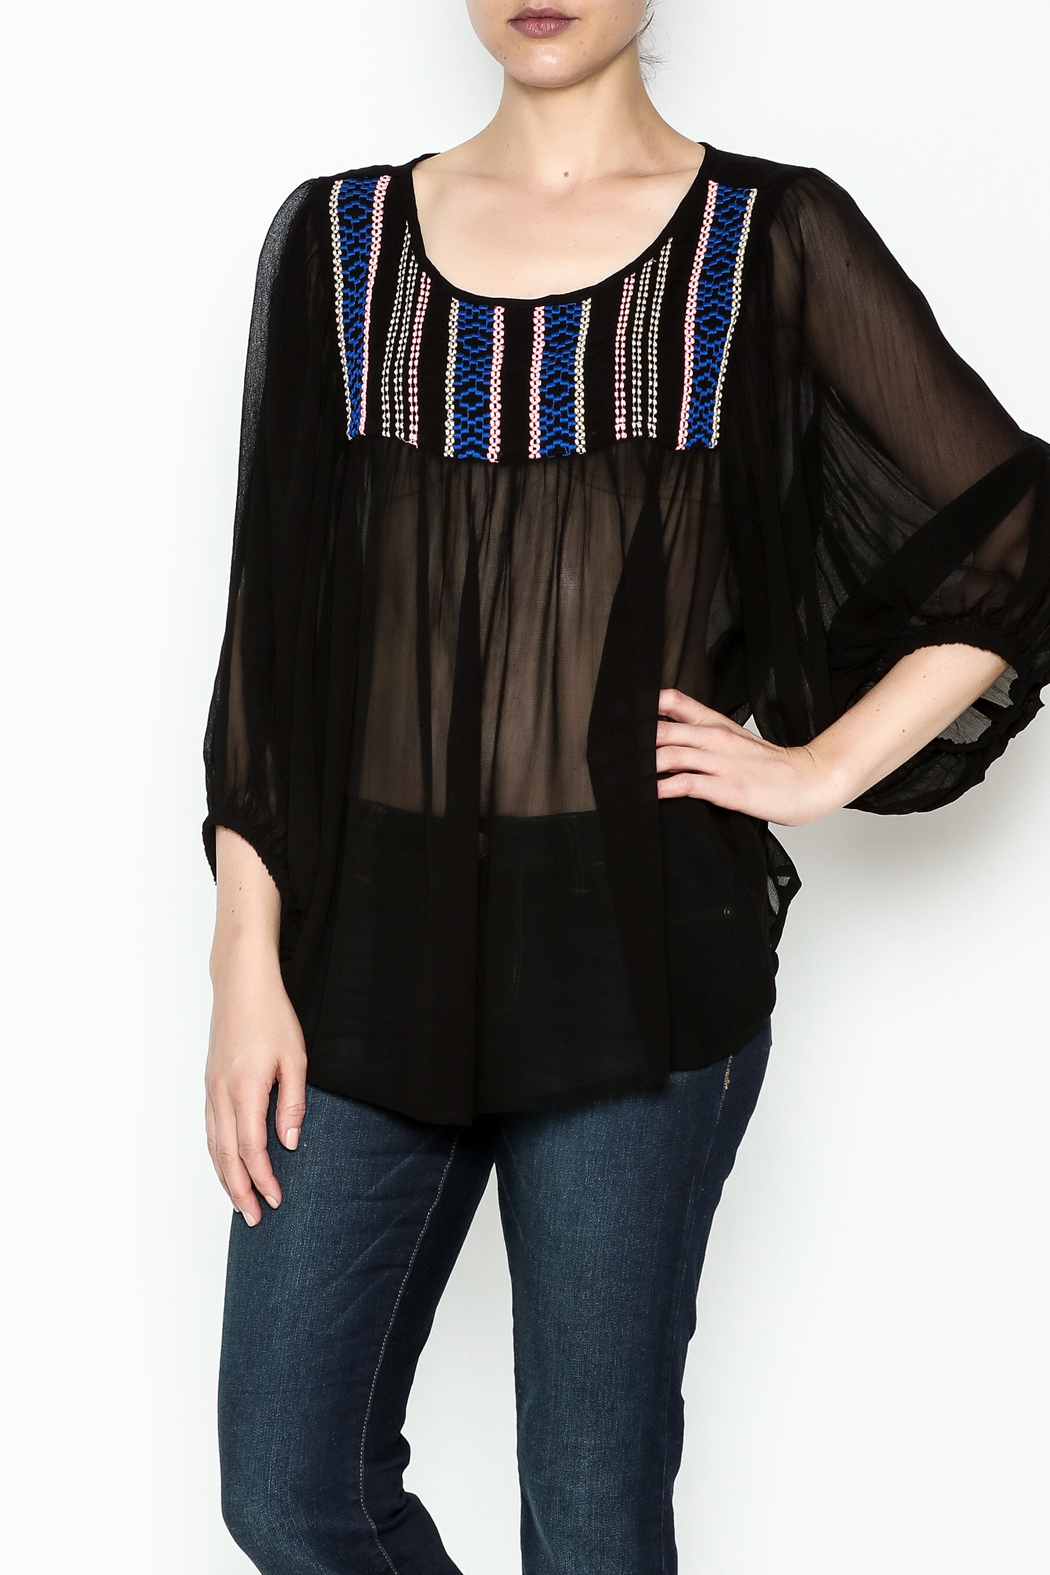 Ivy Jane Black Peasant Top - Main Image